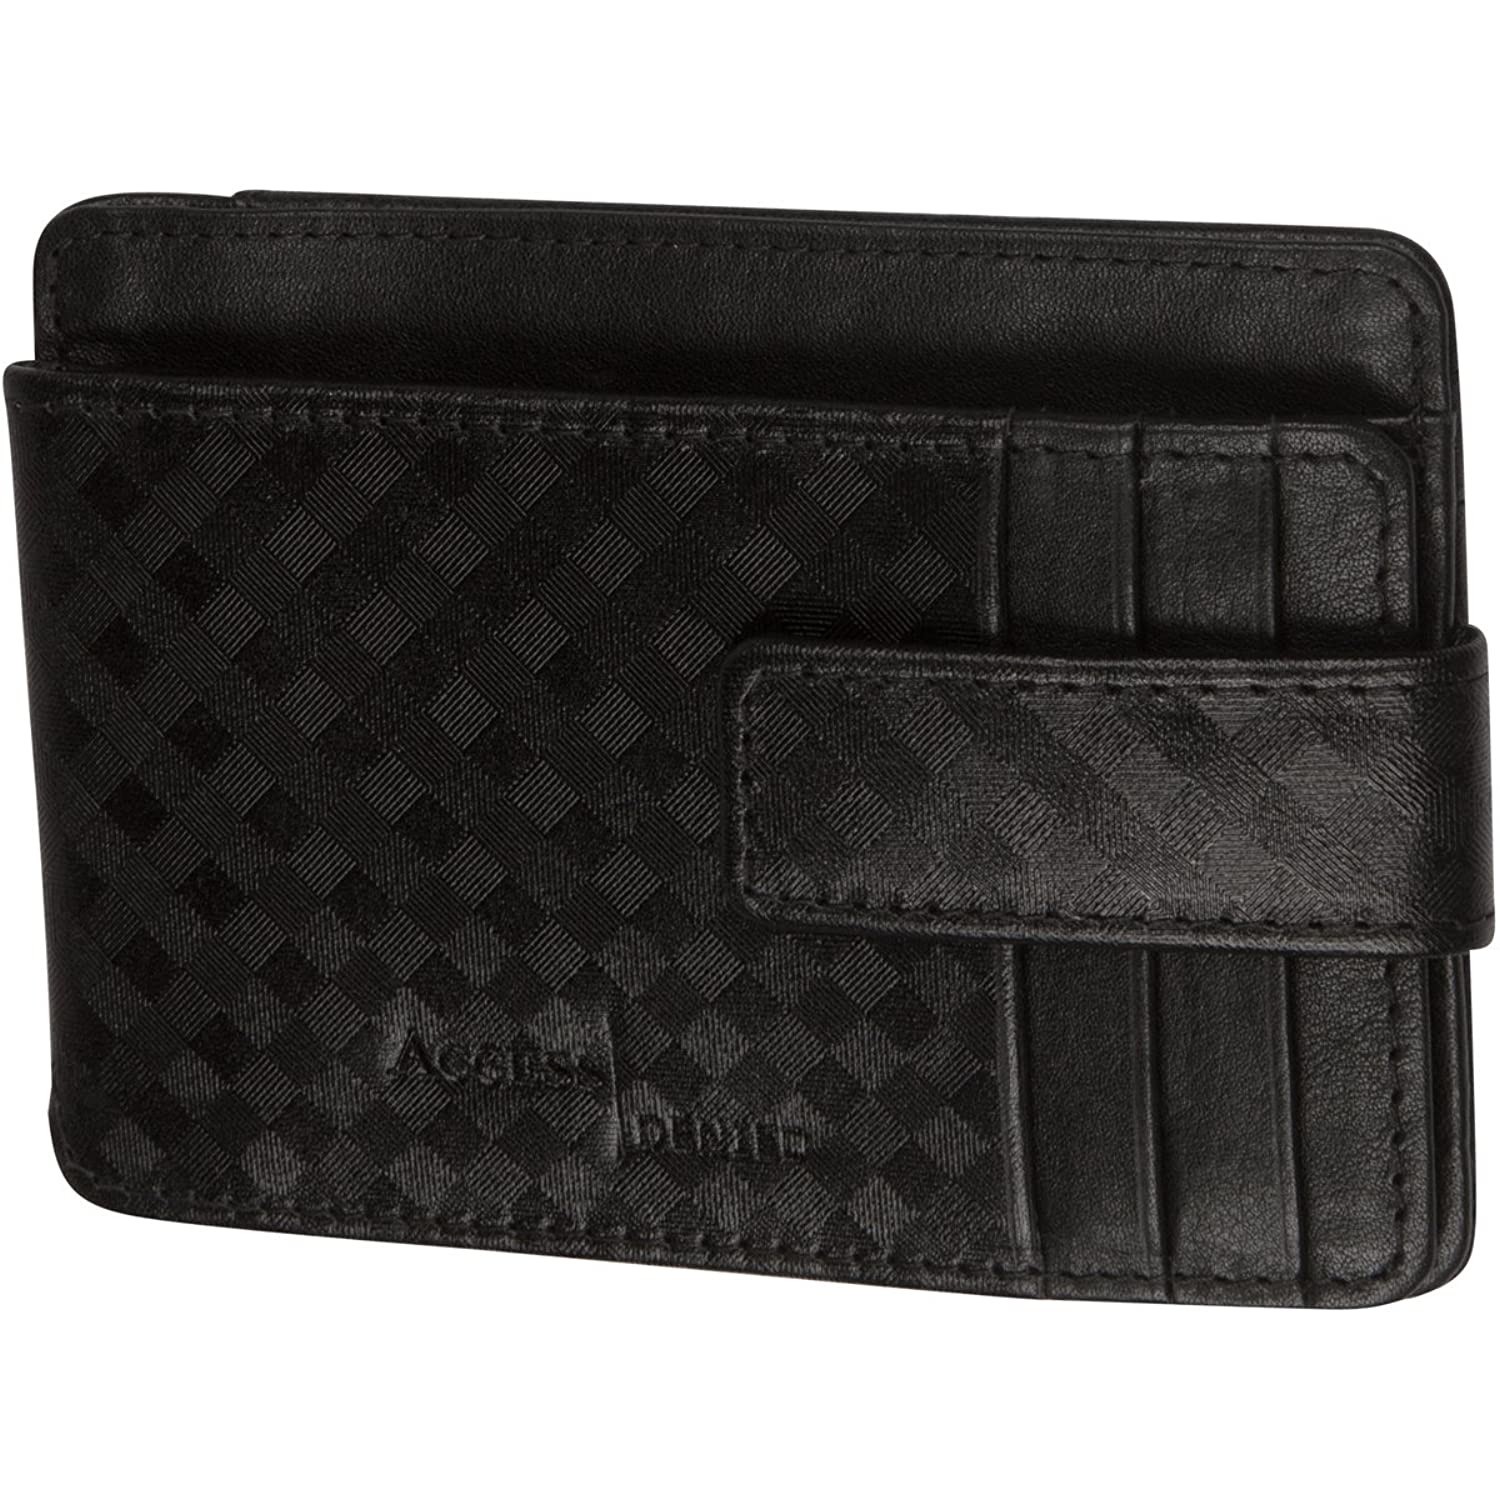 Access Denied RFID Front Pocket Wallet Slim Leather with Flip IT Badge ID